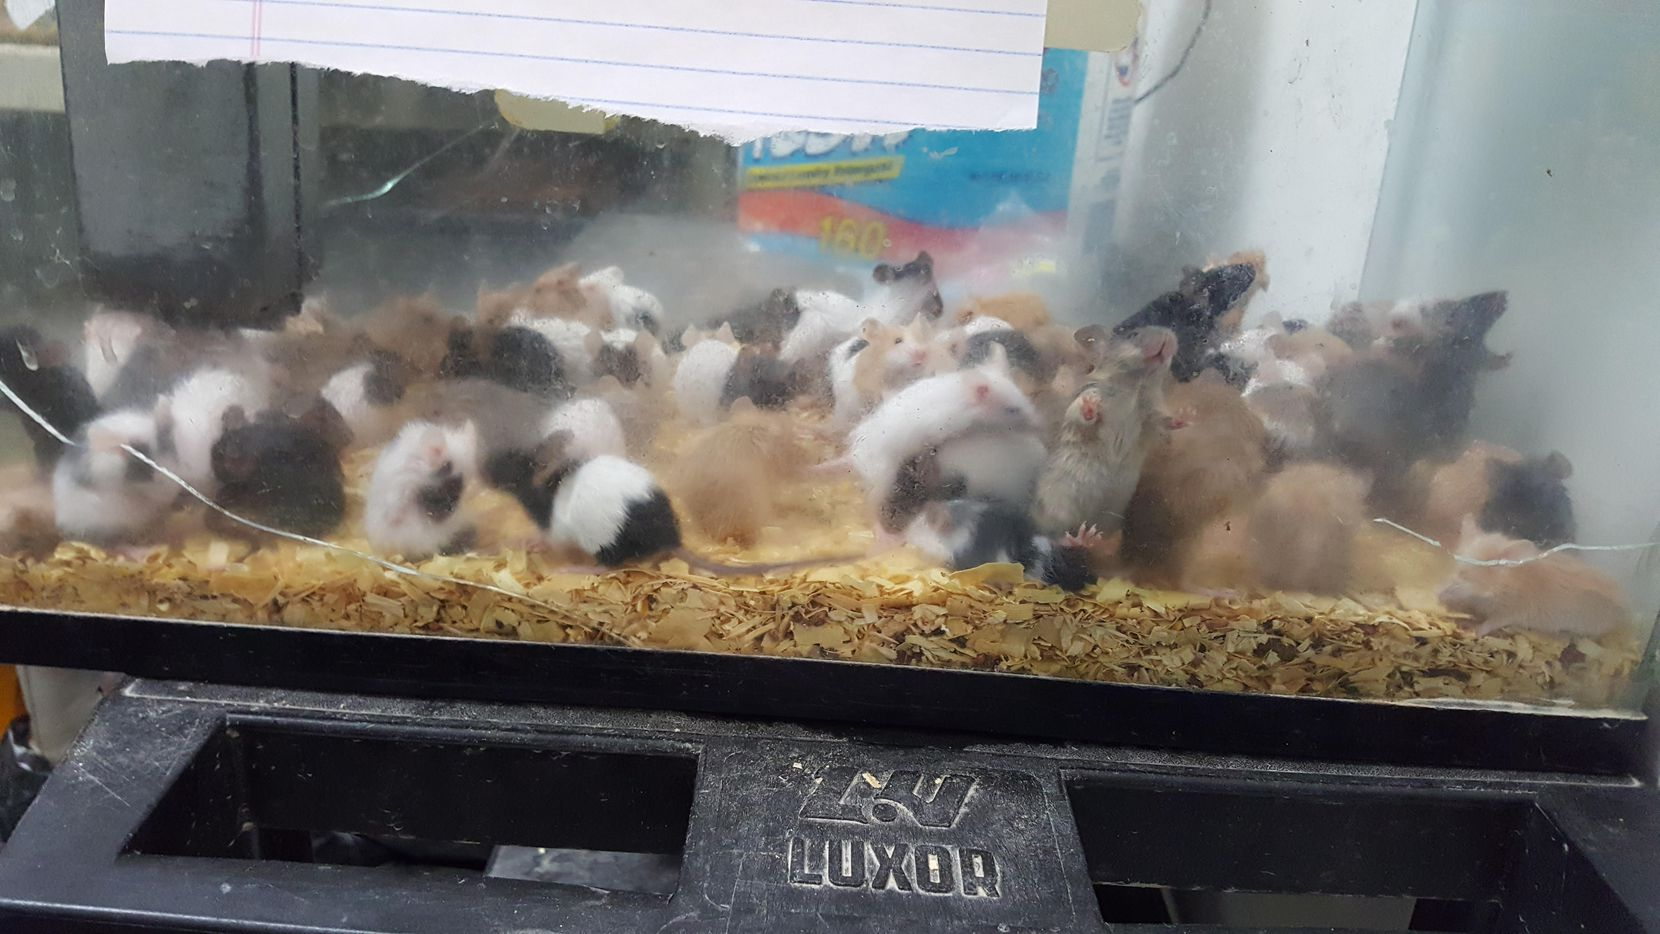 More than 80 small acquariums with rats and mice were removed from a small room at the back of the store. A dozen animals were dead, Animal Services Manager Mindy Henry told the Cleburne Times-Review.